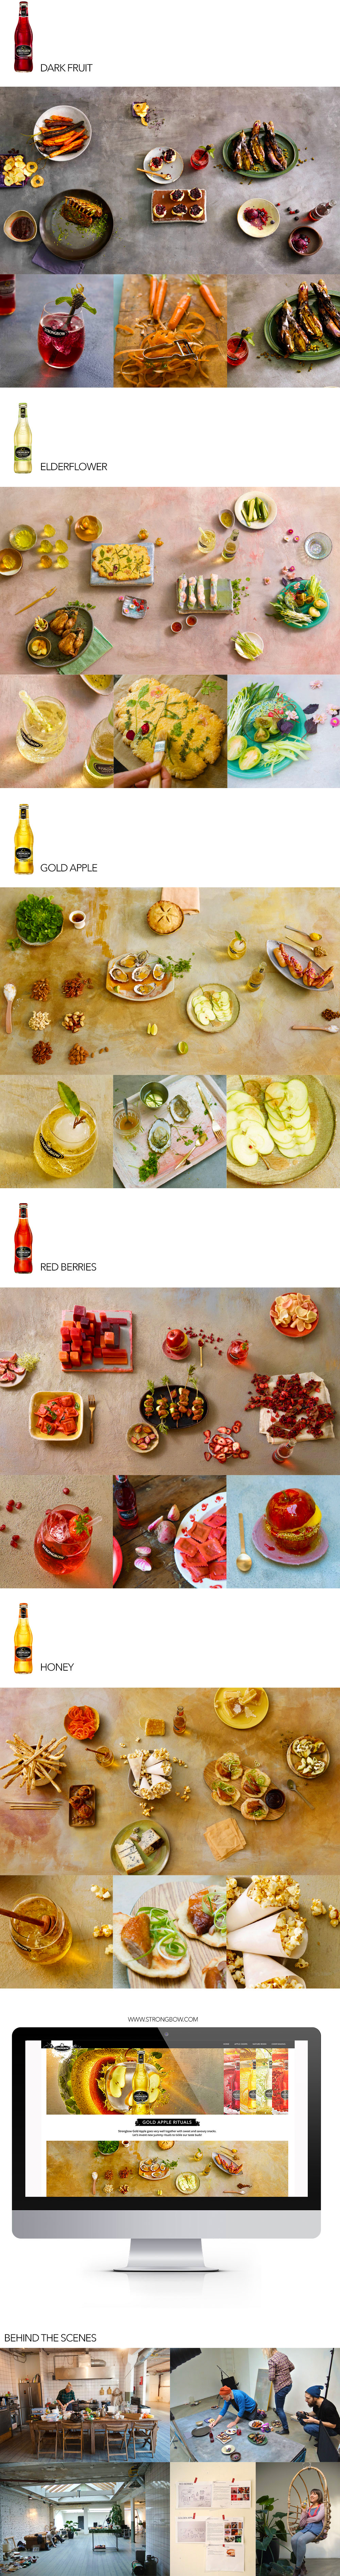 STRONGBOW FOODPAIRING